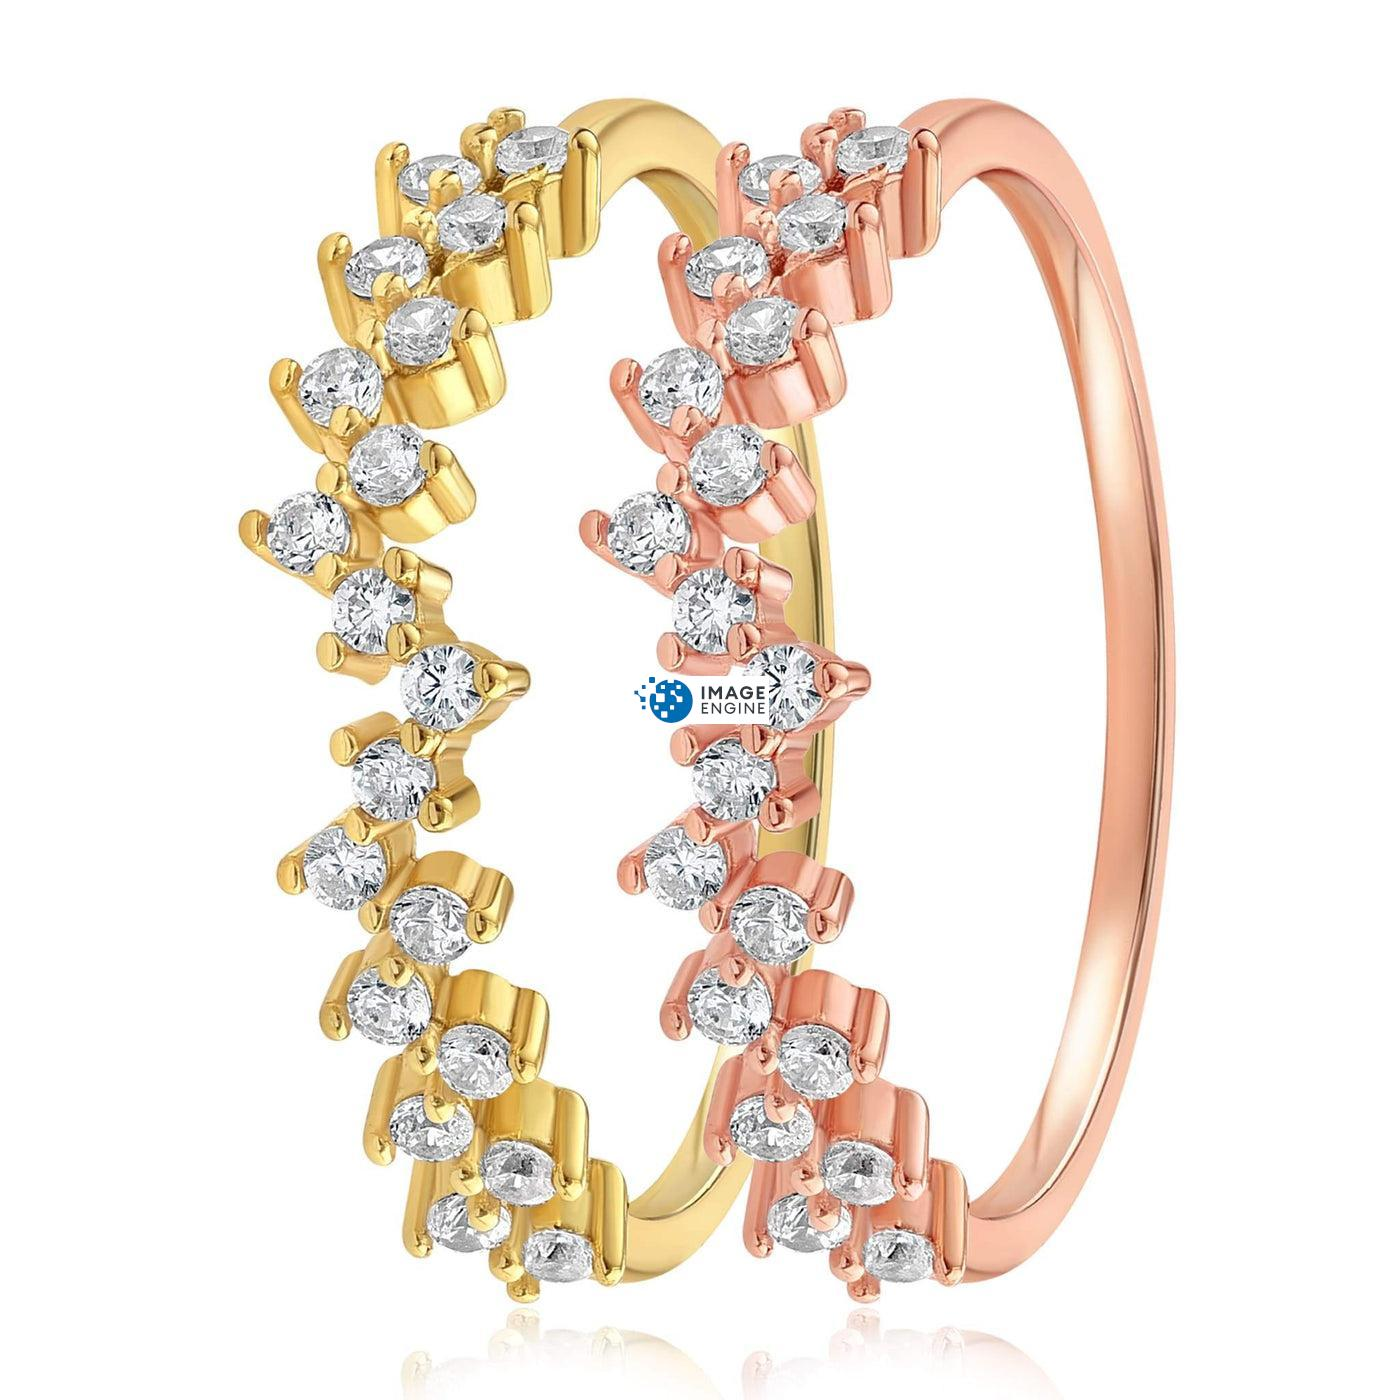 Esther Petite Cluster Ring - Side by Side - 18K Yellow Gold Vermeil and 18K Rose Gold Vermeil